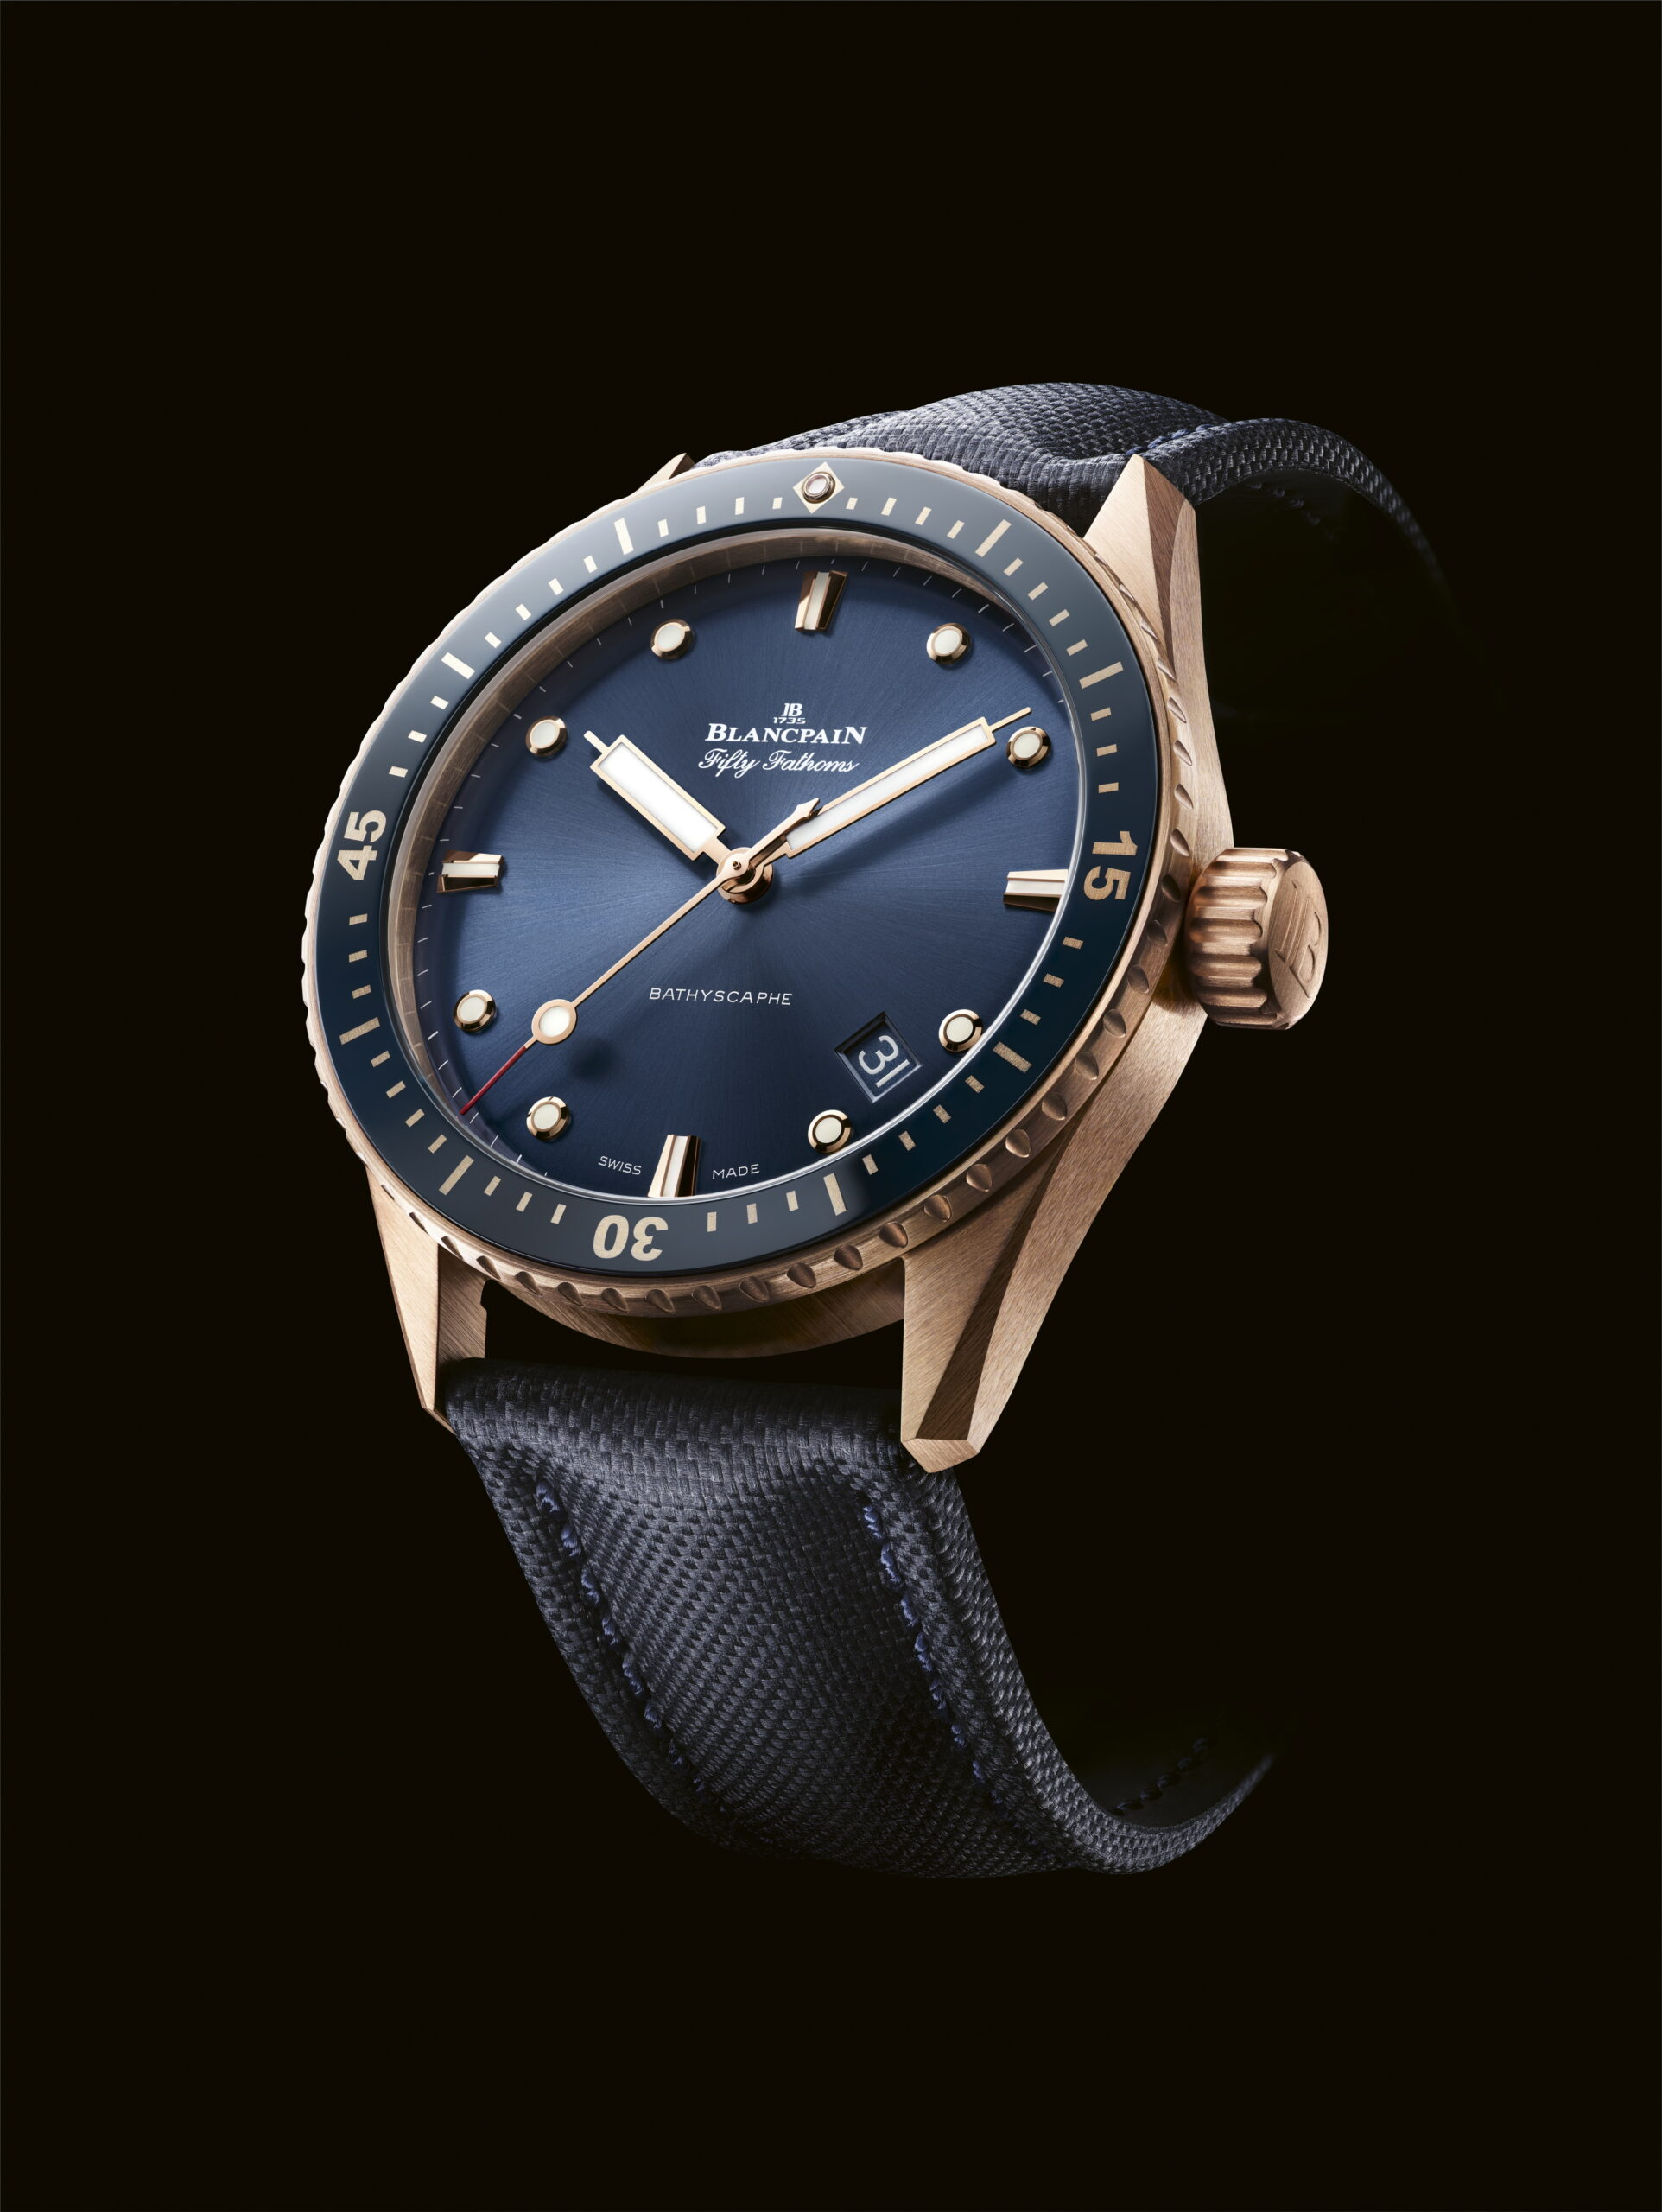 Blancpain Fifty Fathoms Bathyscaphe Sedna Gold-2